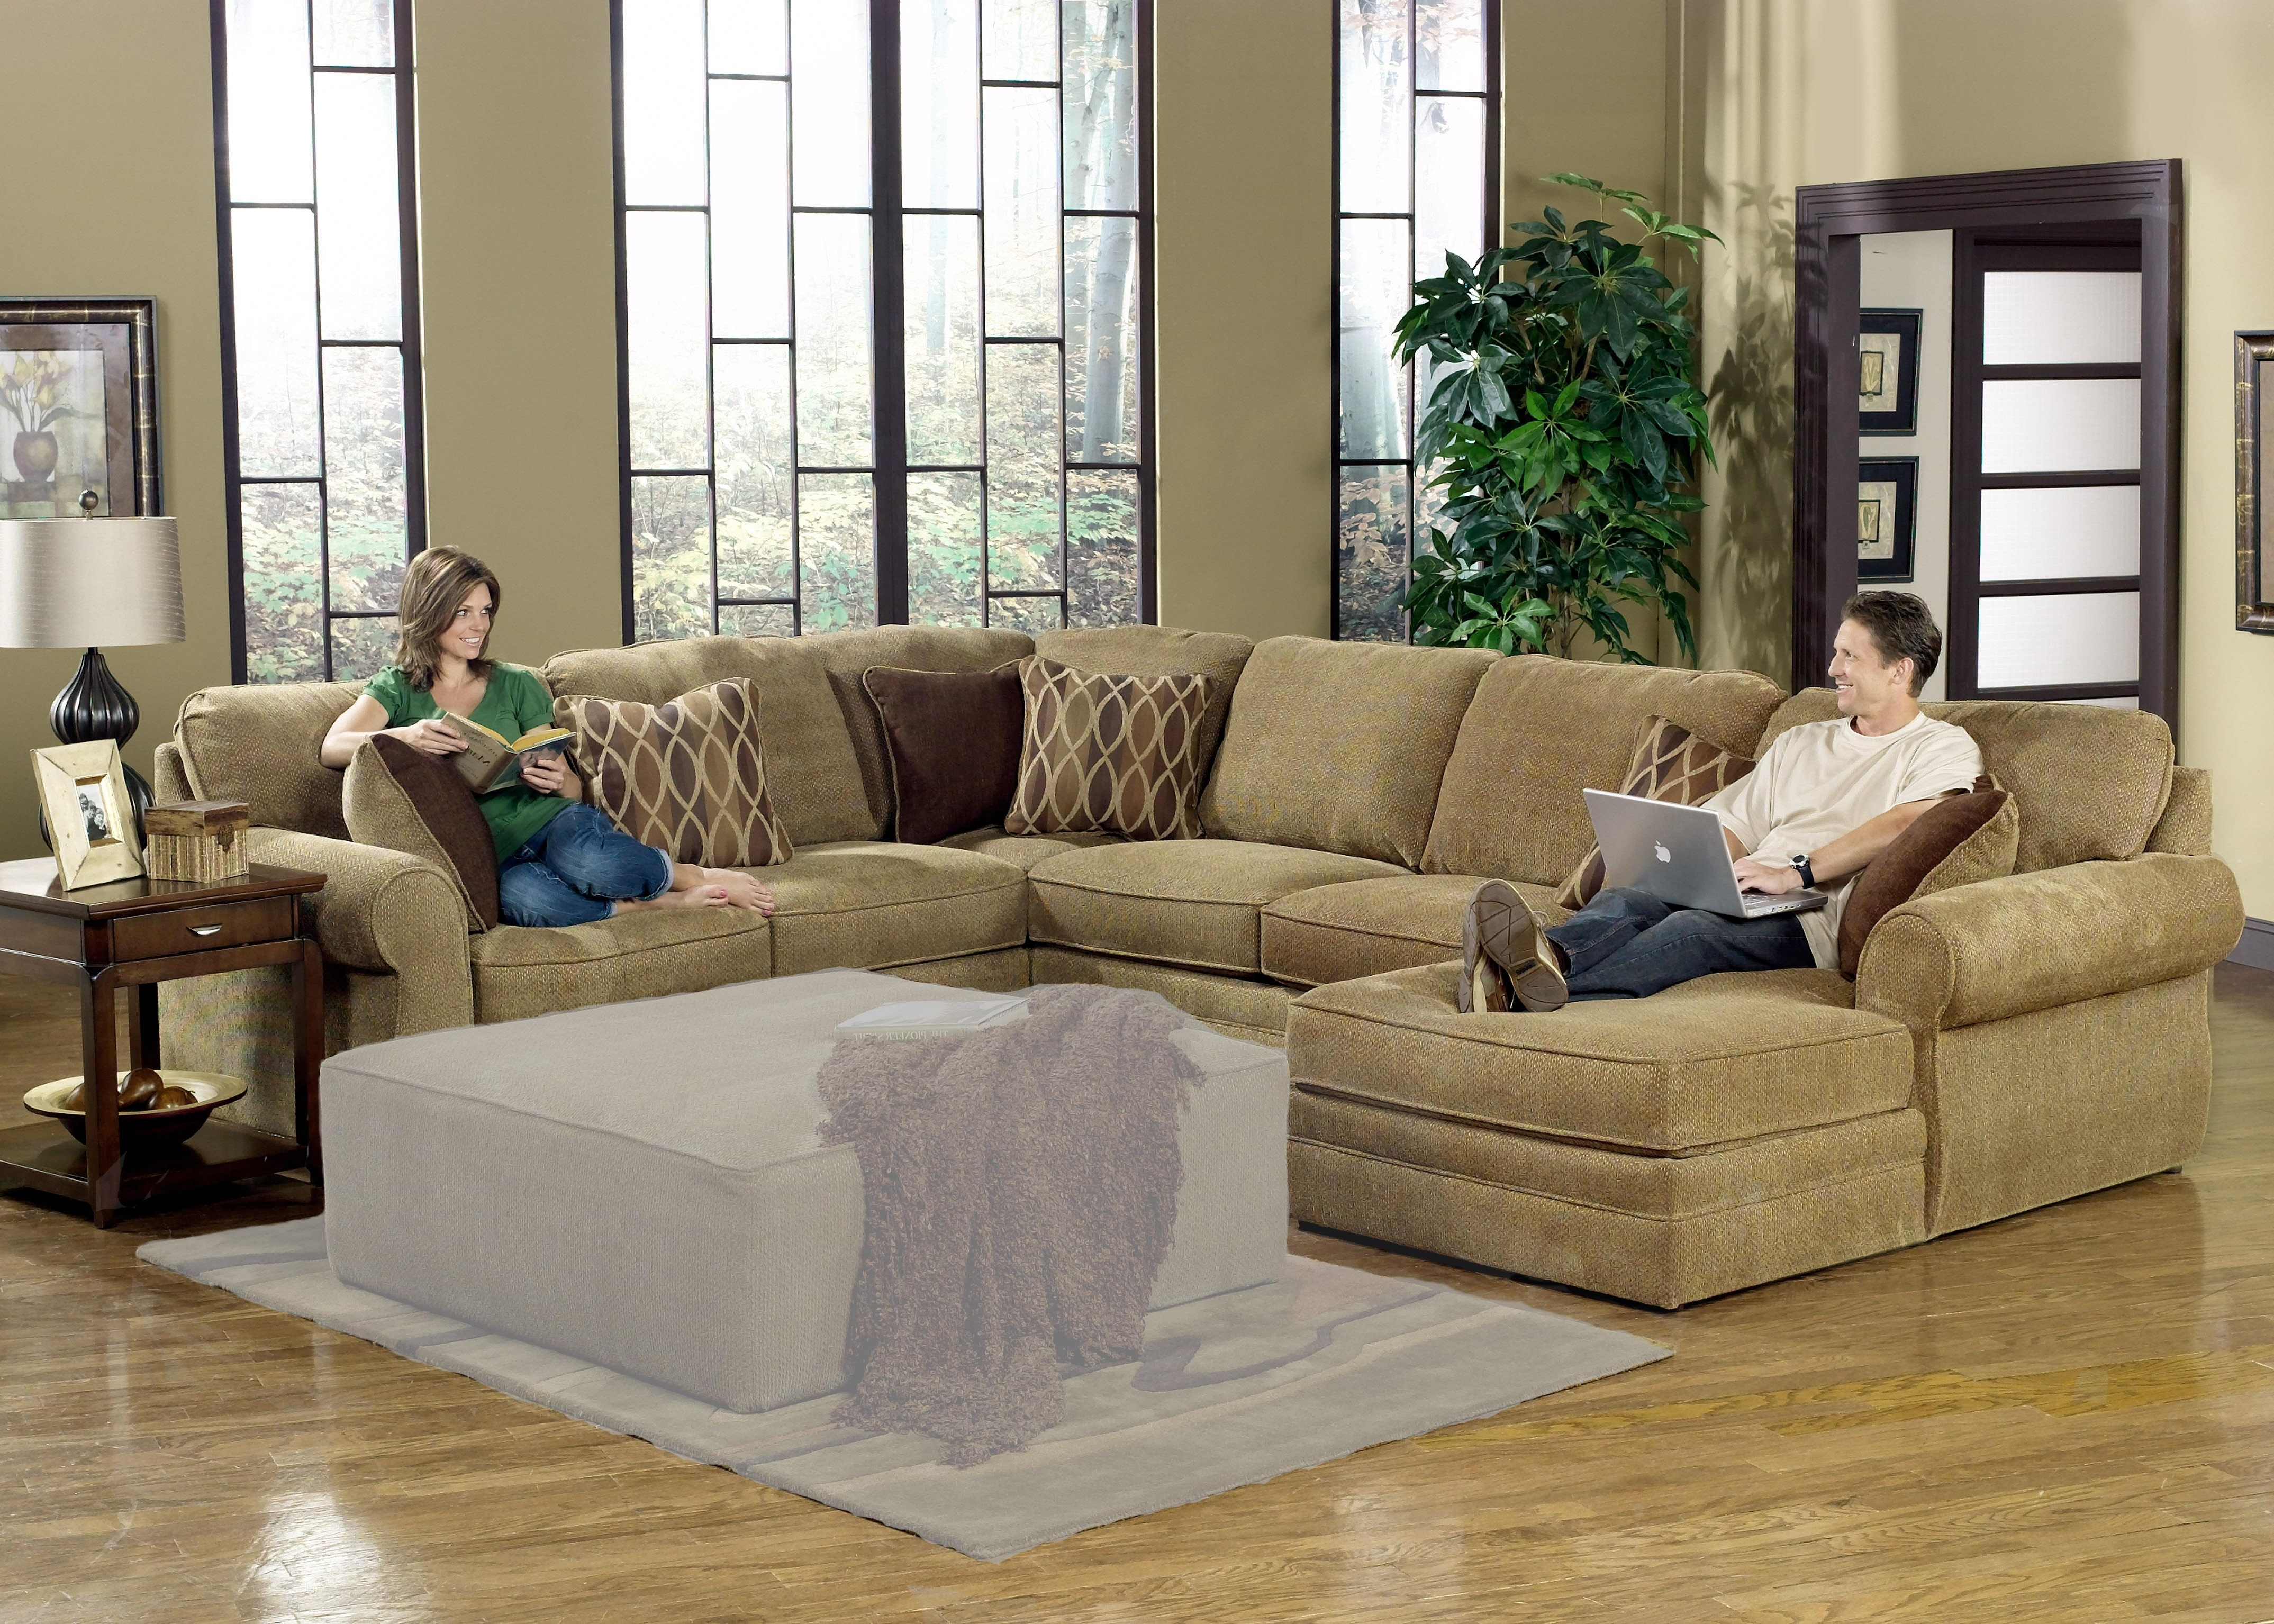 Fascinating U Shaped Sectional Sofas 123 Sofa Sectionals Canada In Current Ontario Canada Sectional Sofas (View 3 of 20)